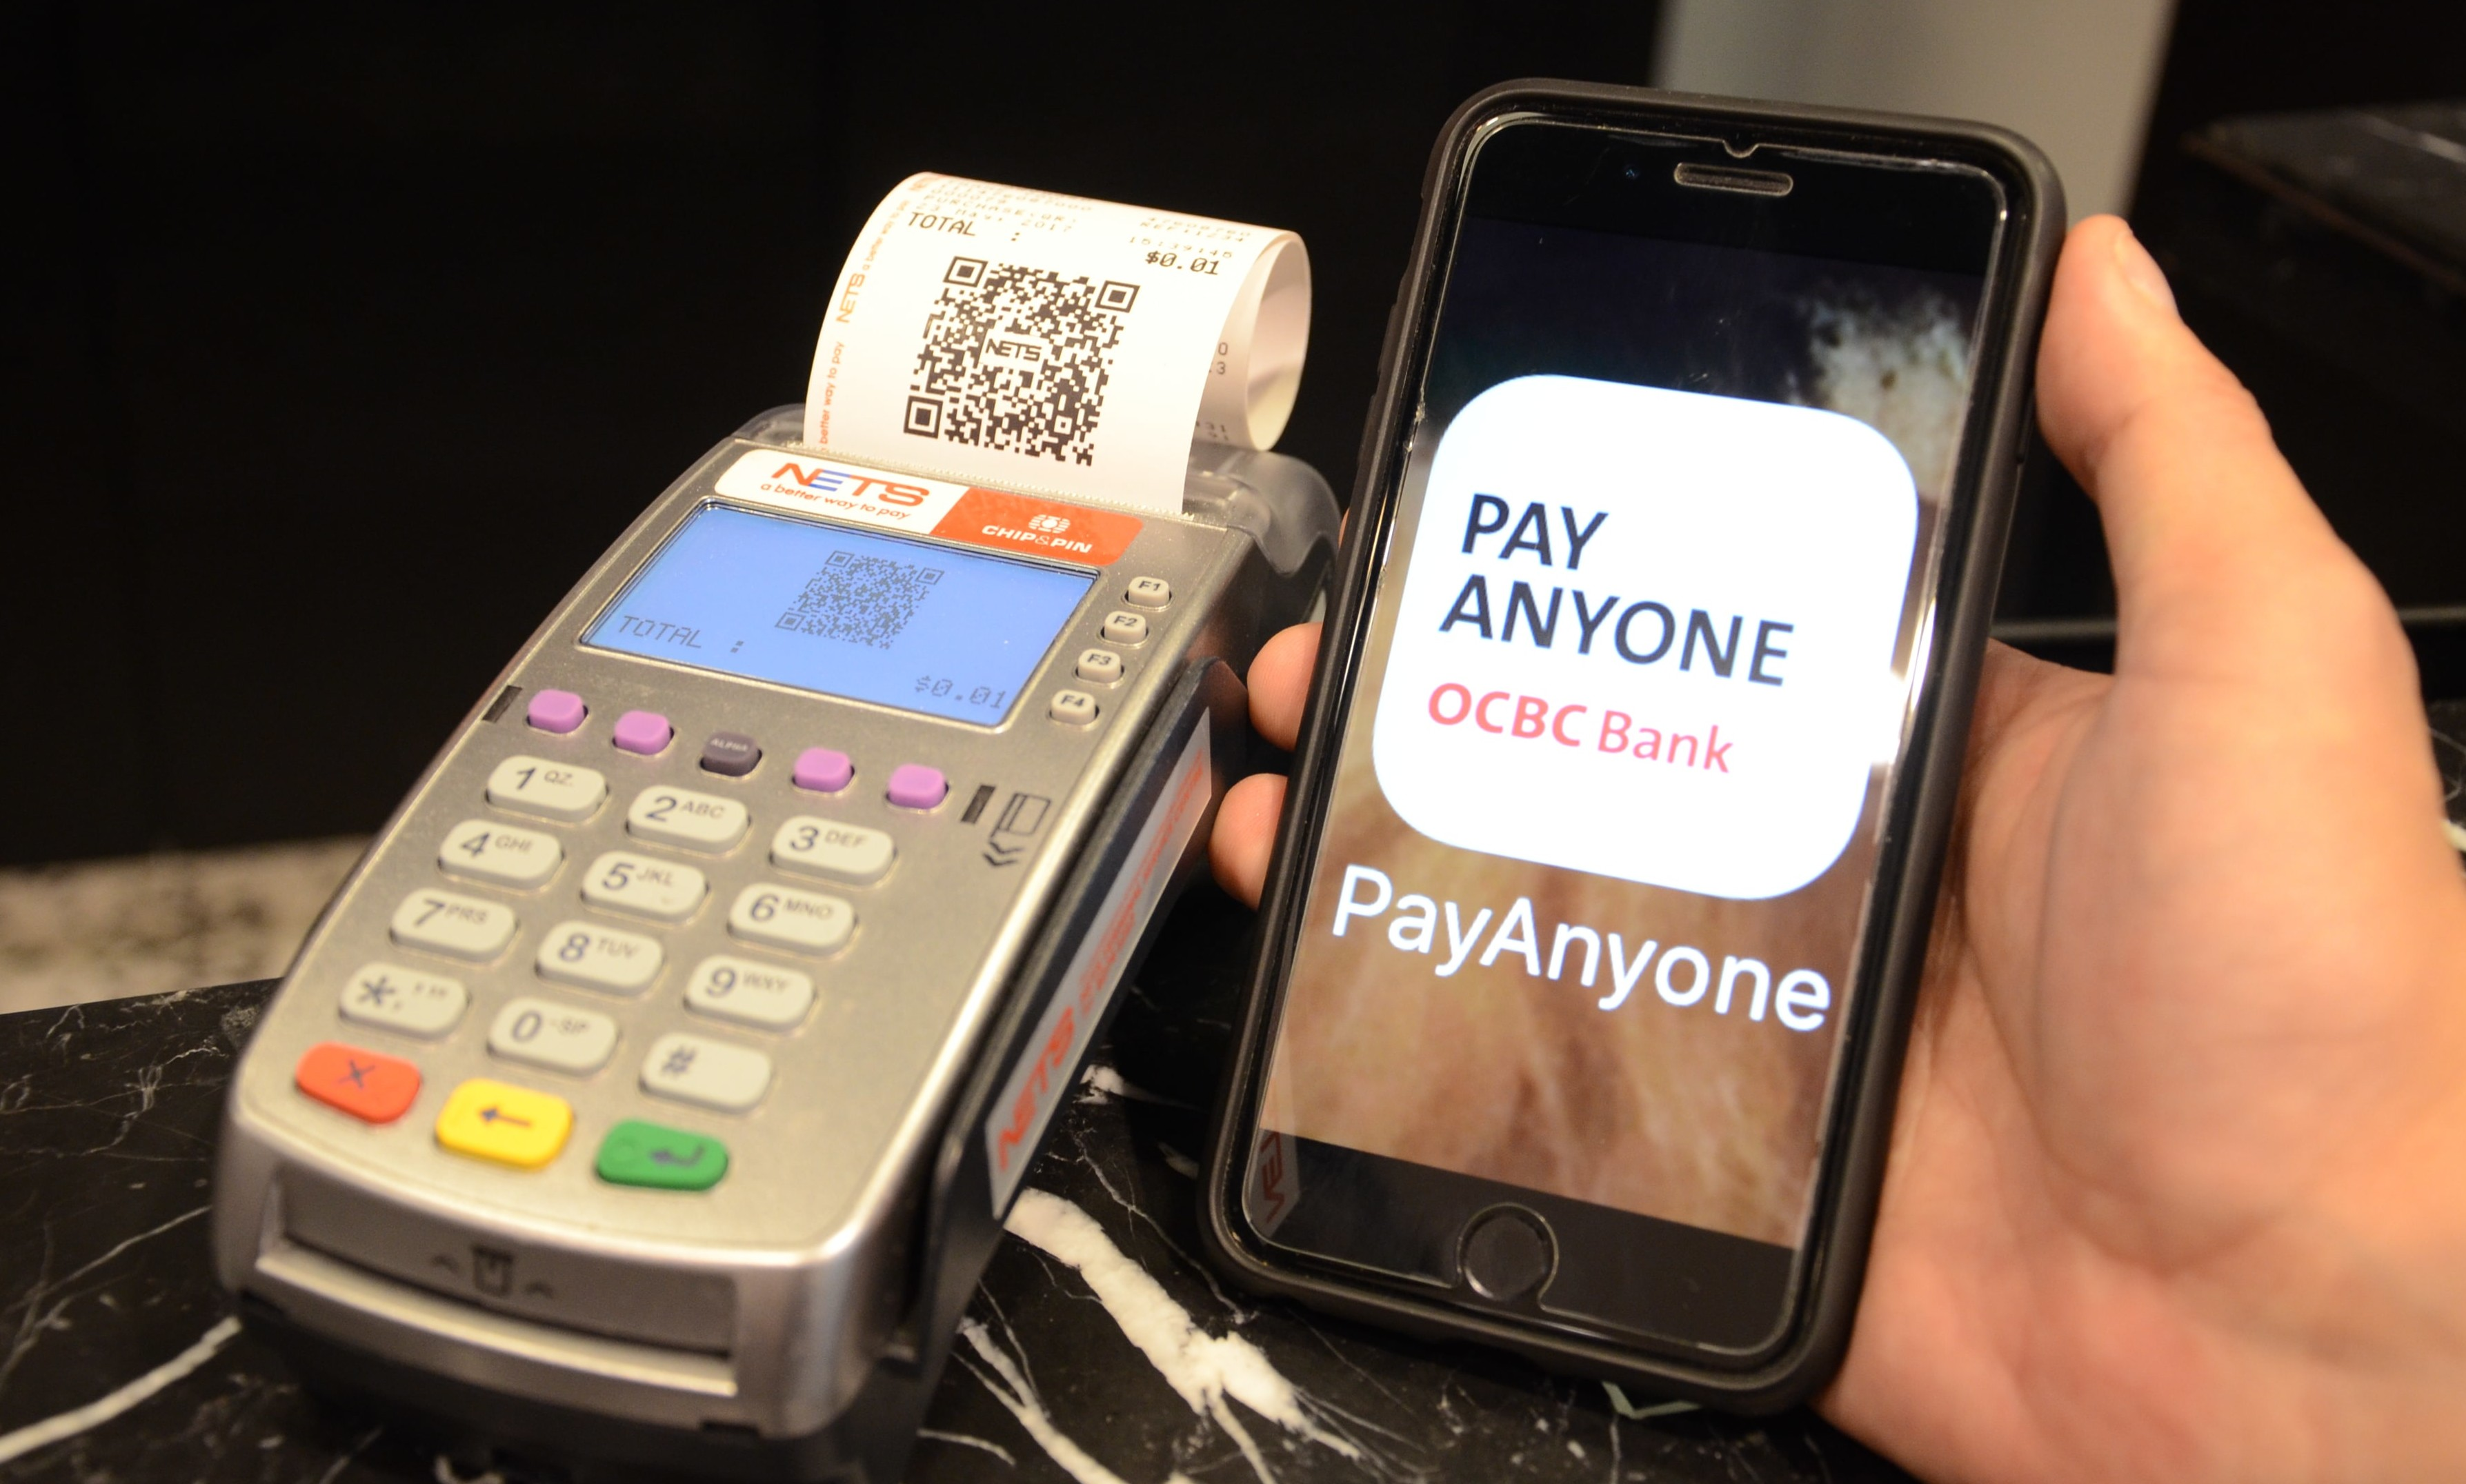 OCBC Bank has been pushing for QR code payments in Singapore.